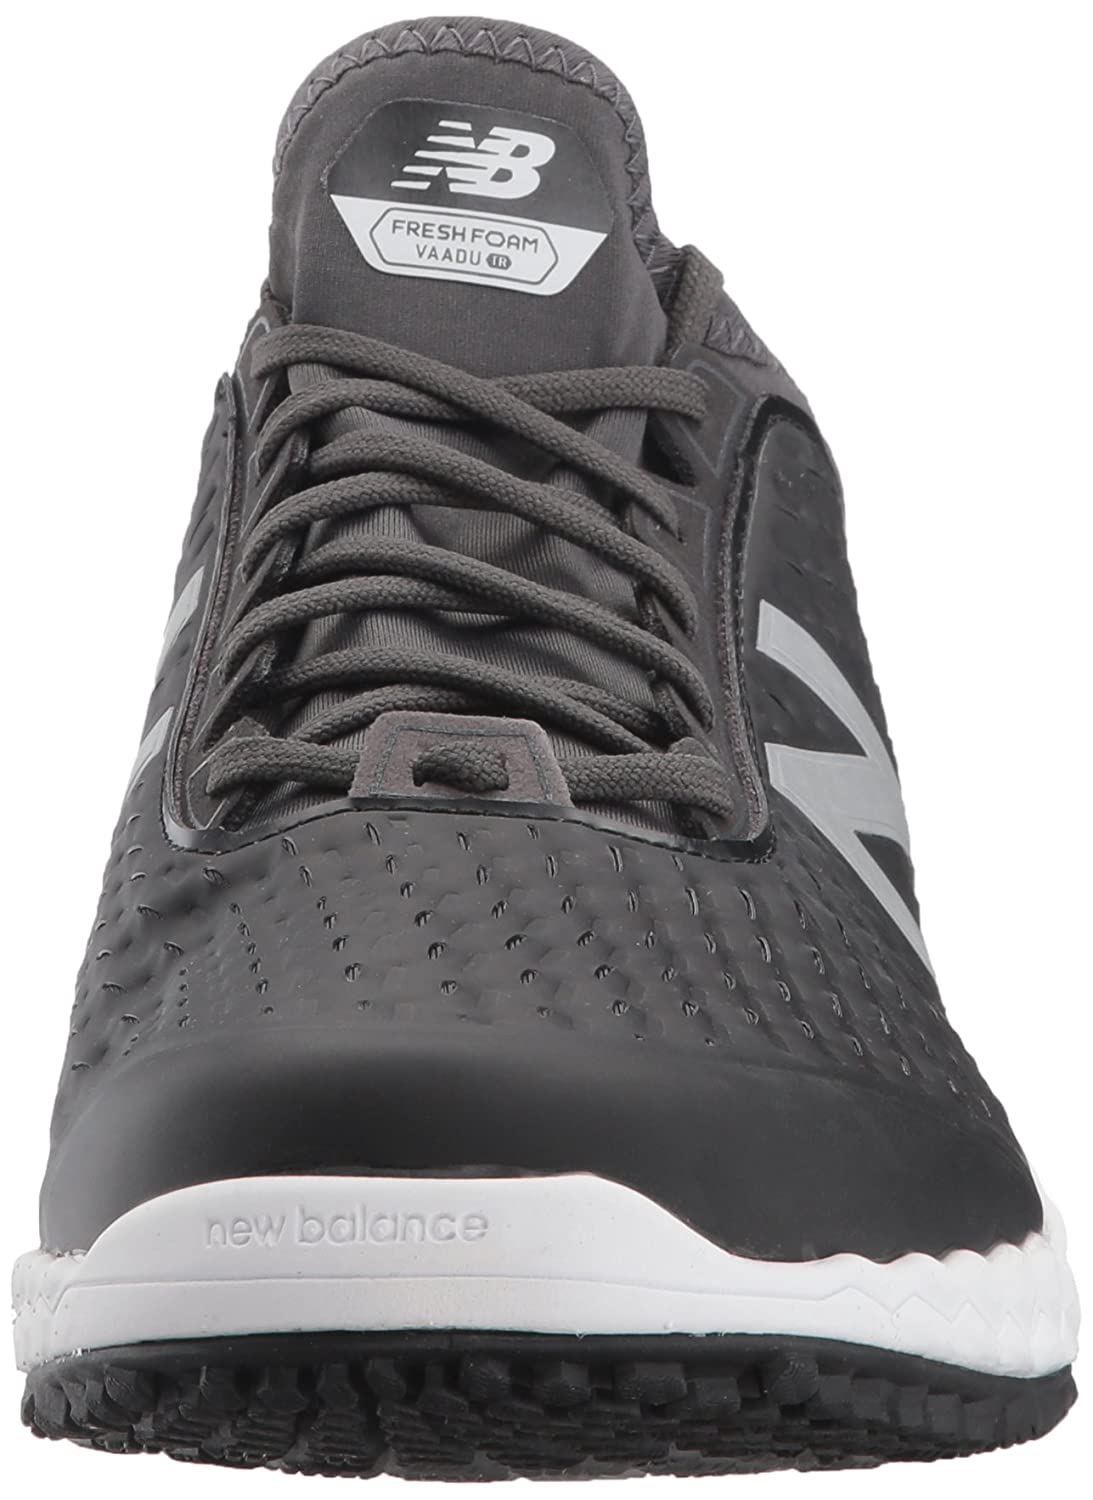 New Balance Men/'s Mxvado Ankle-High Training Shoes